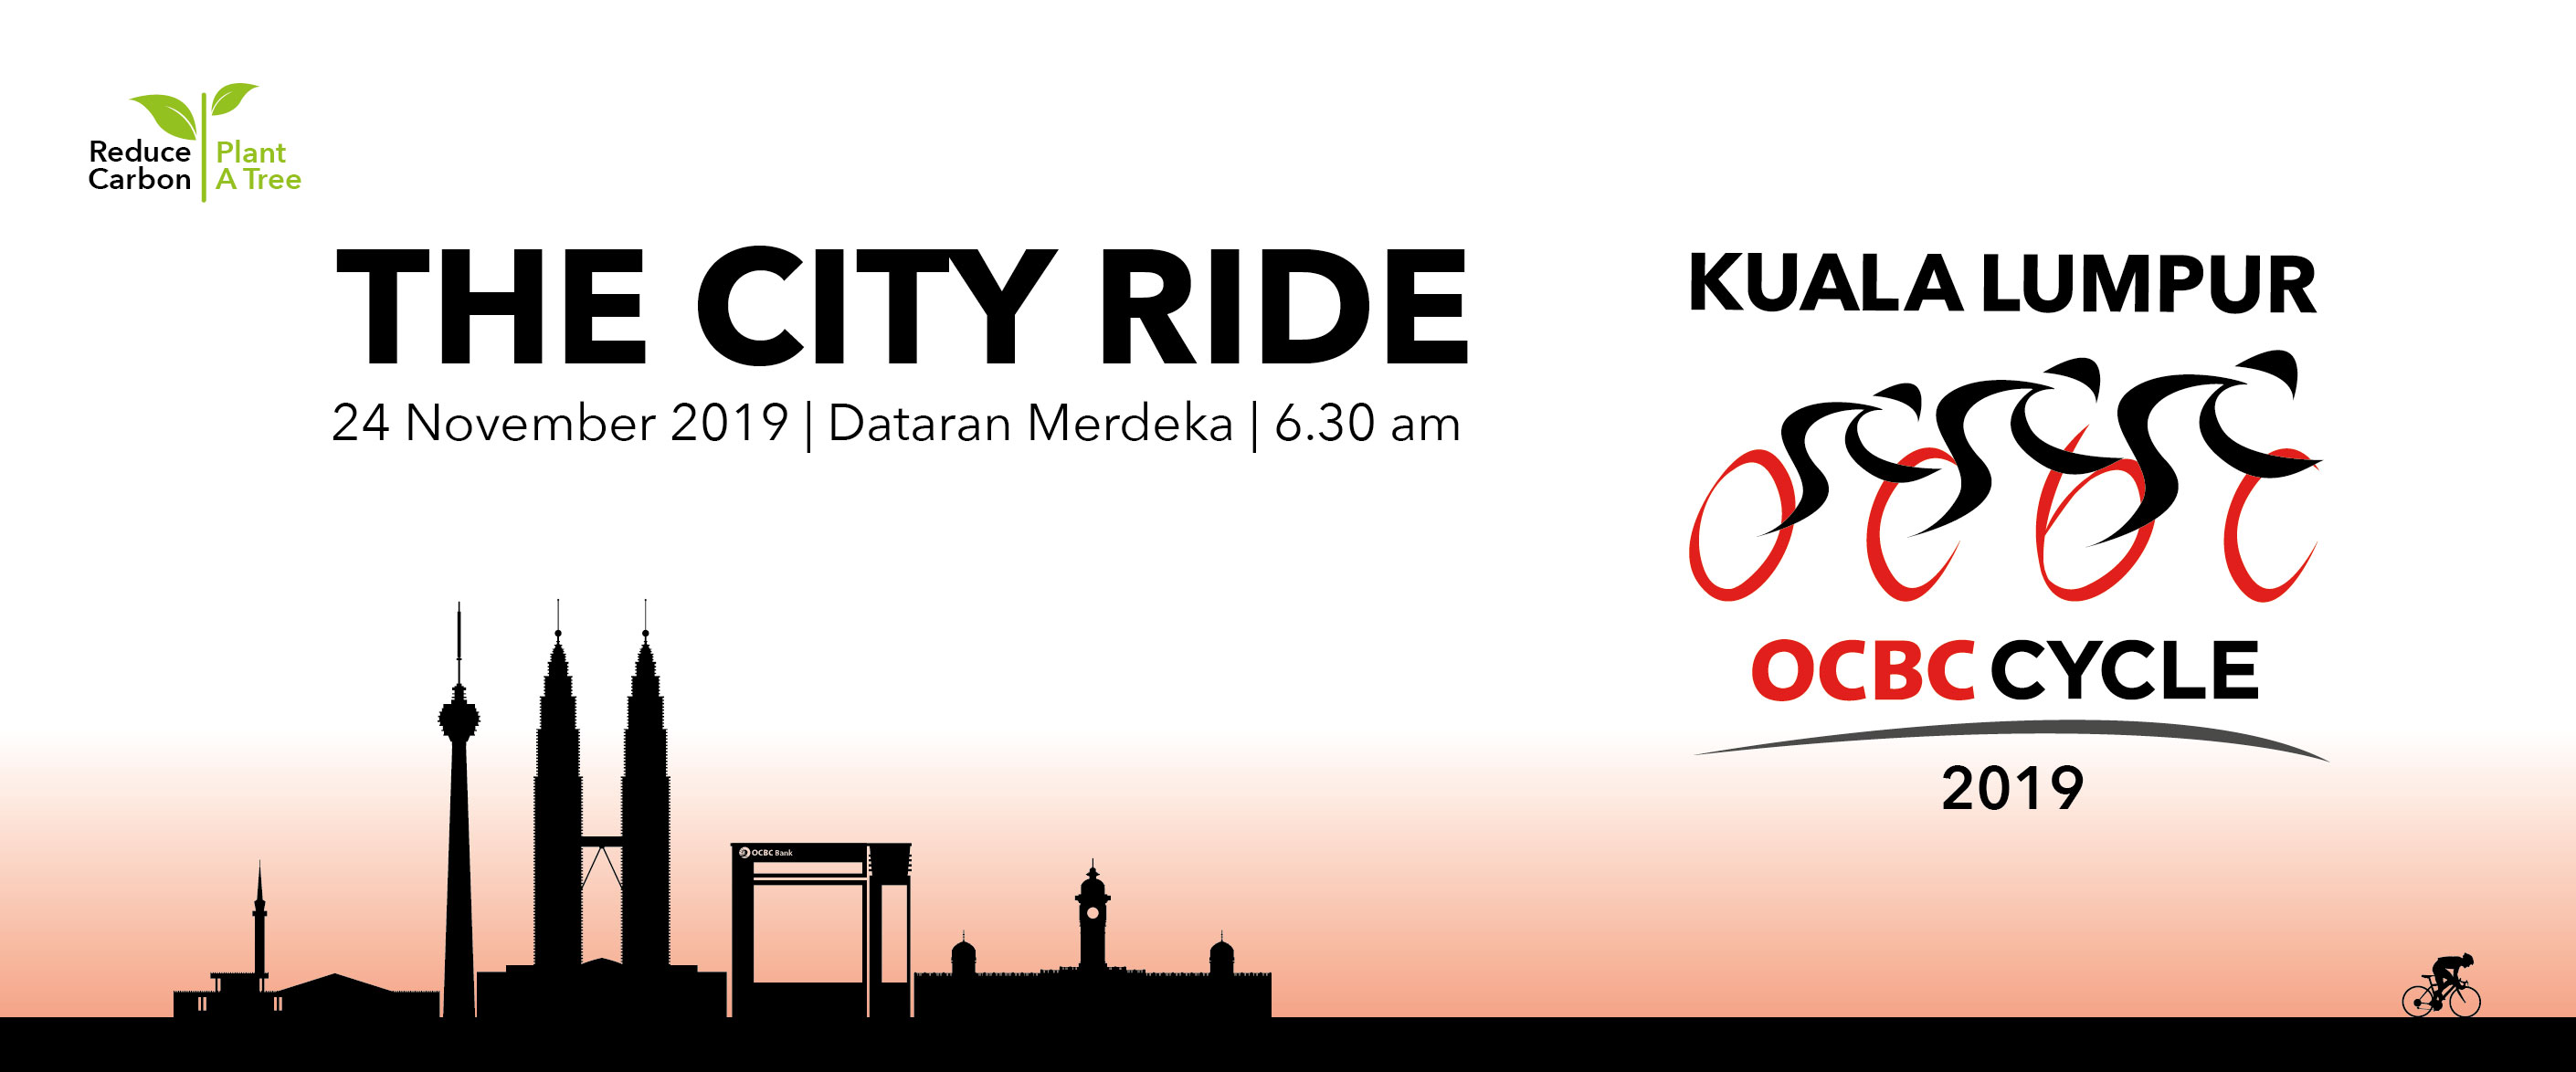 The City Ride 2019